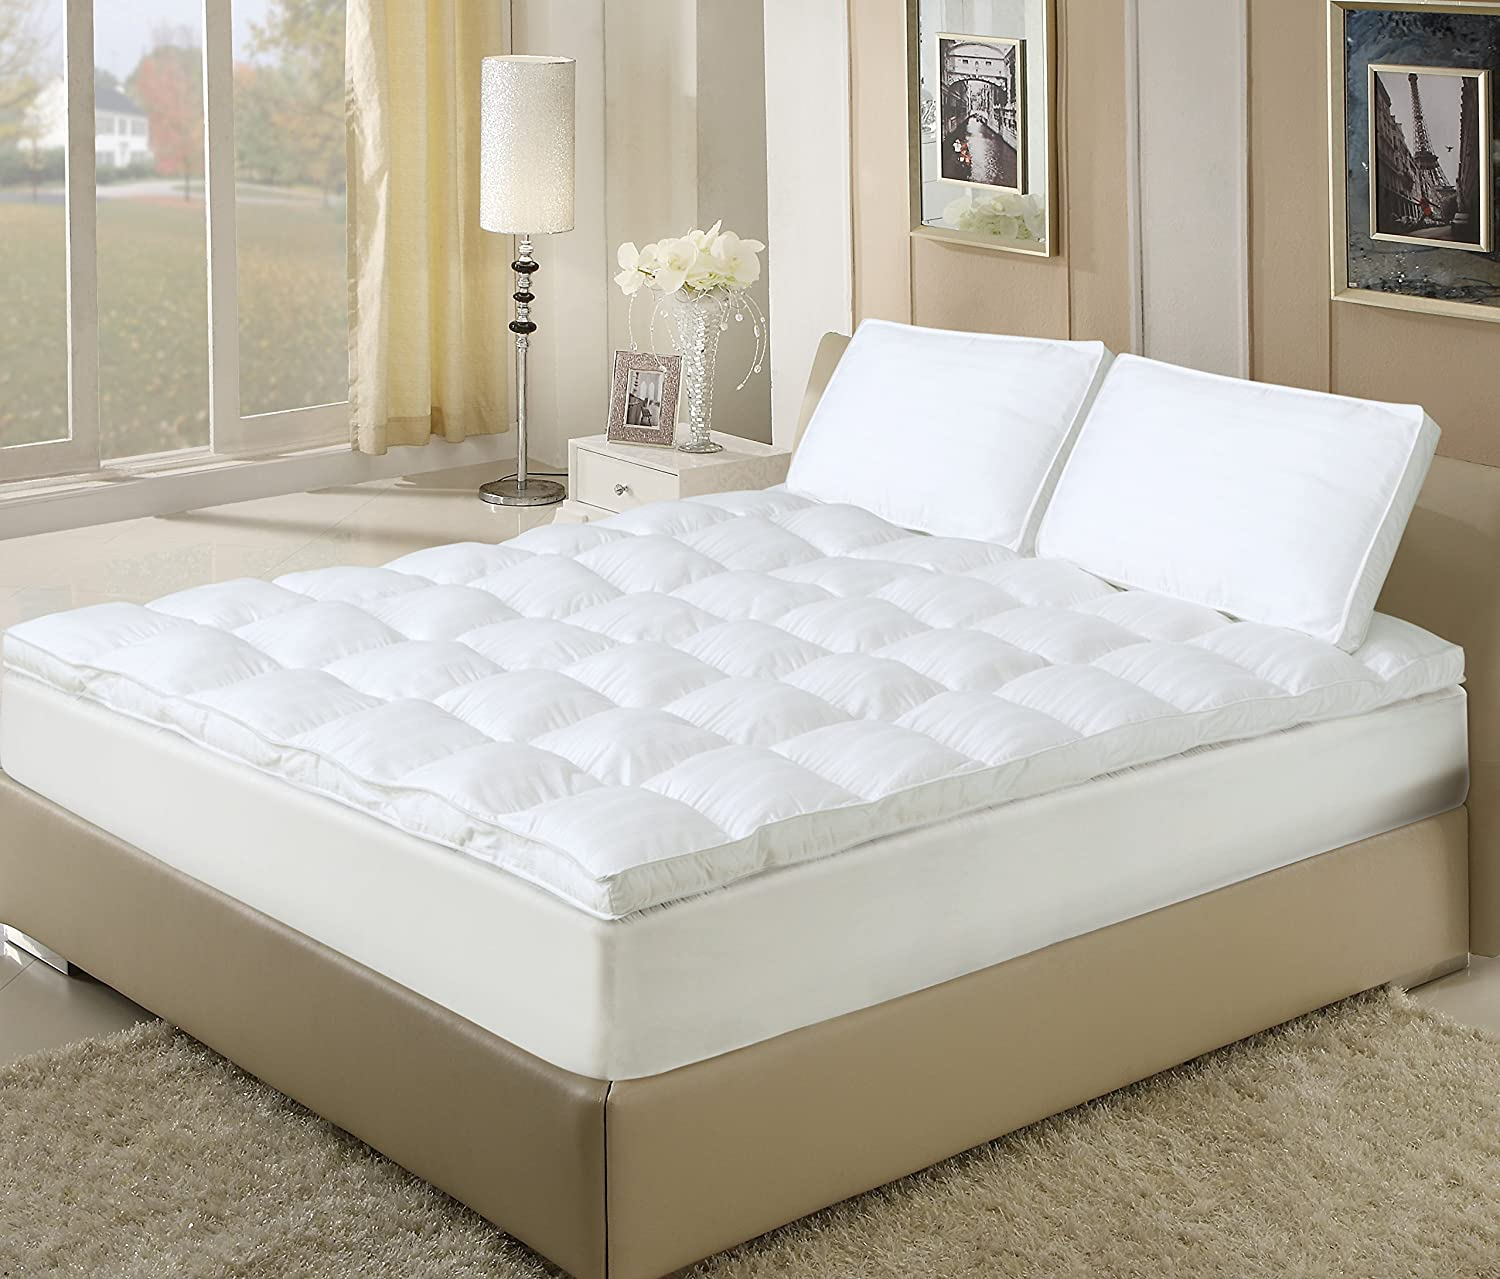 Wool Mattress Pad Reviews 1 Best Fiberbed Down Alternative Mattress Topper Reviews